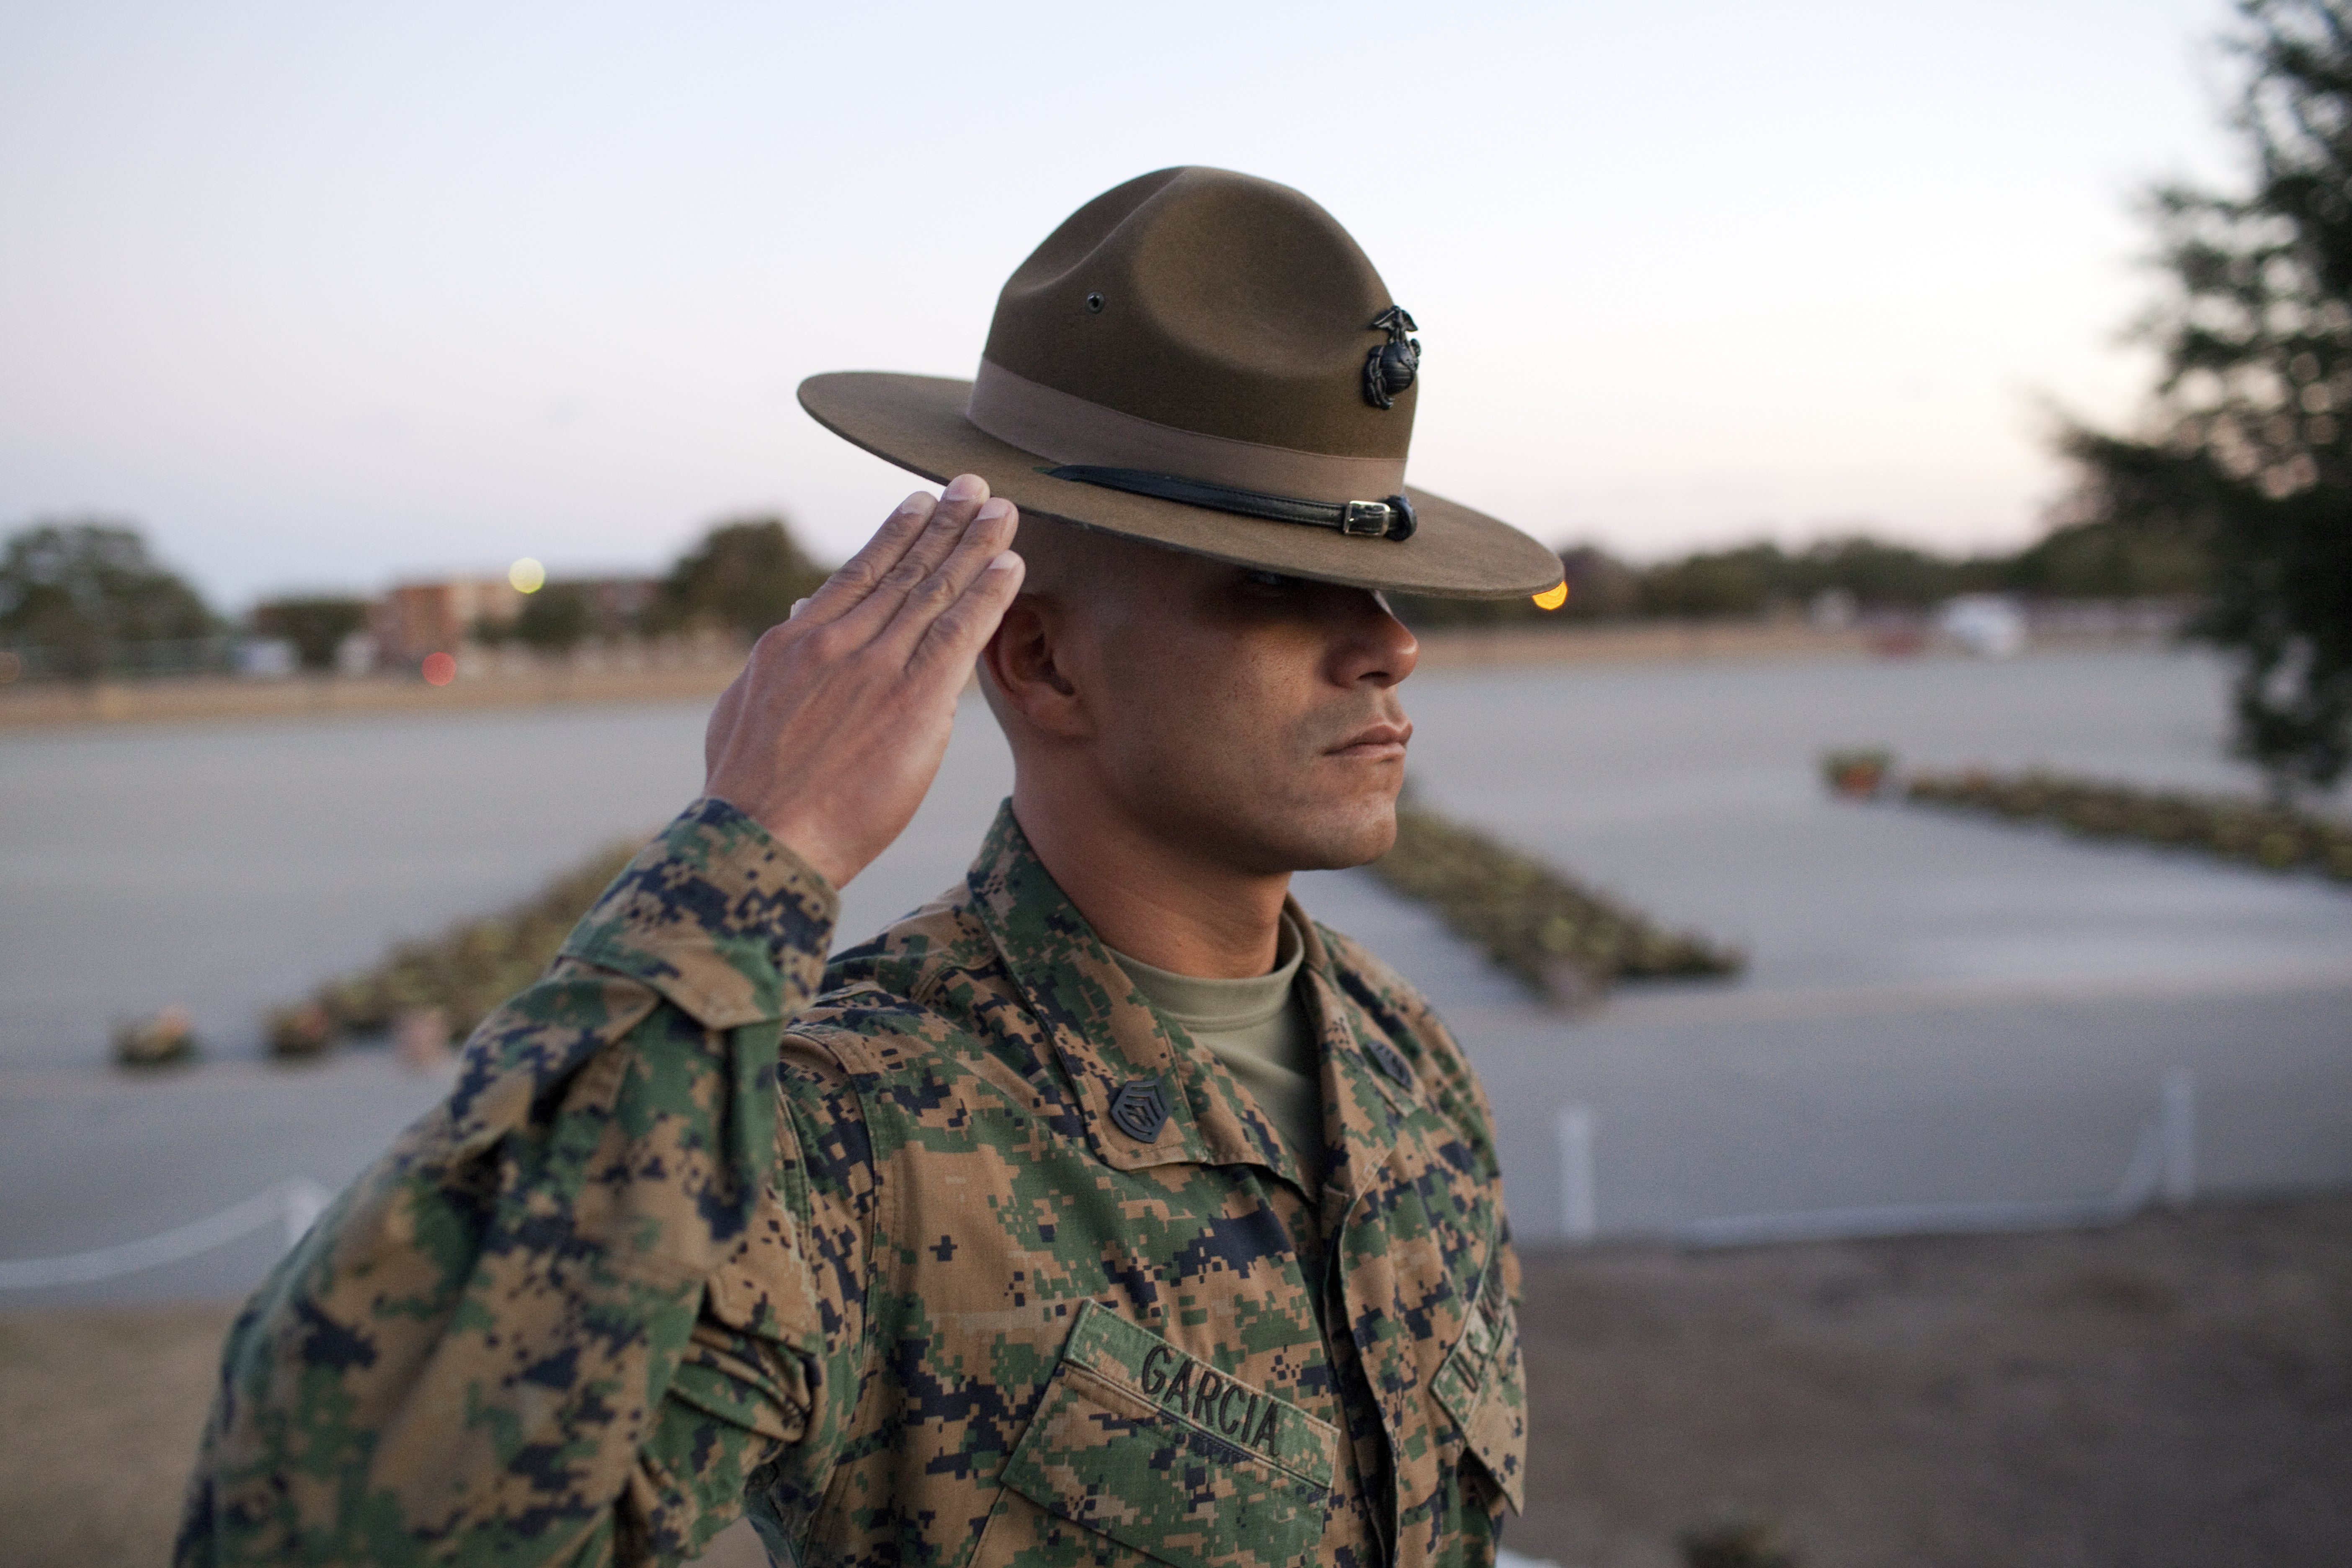 A US Marine Corps Drill Instructor salutes during a dawn ceremony